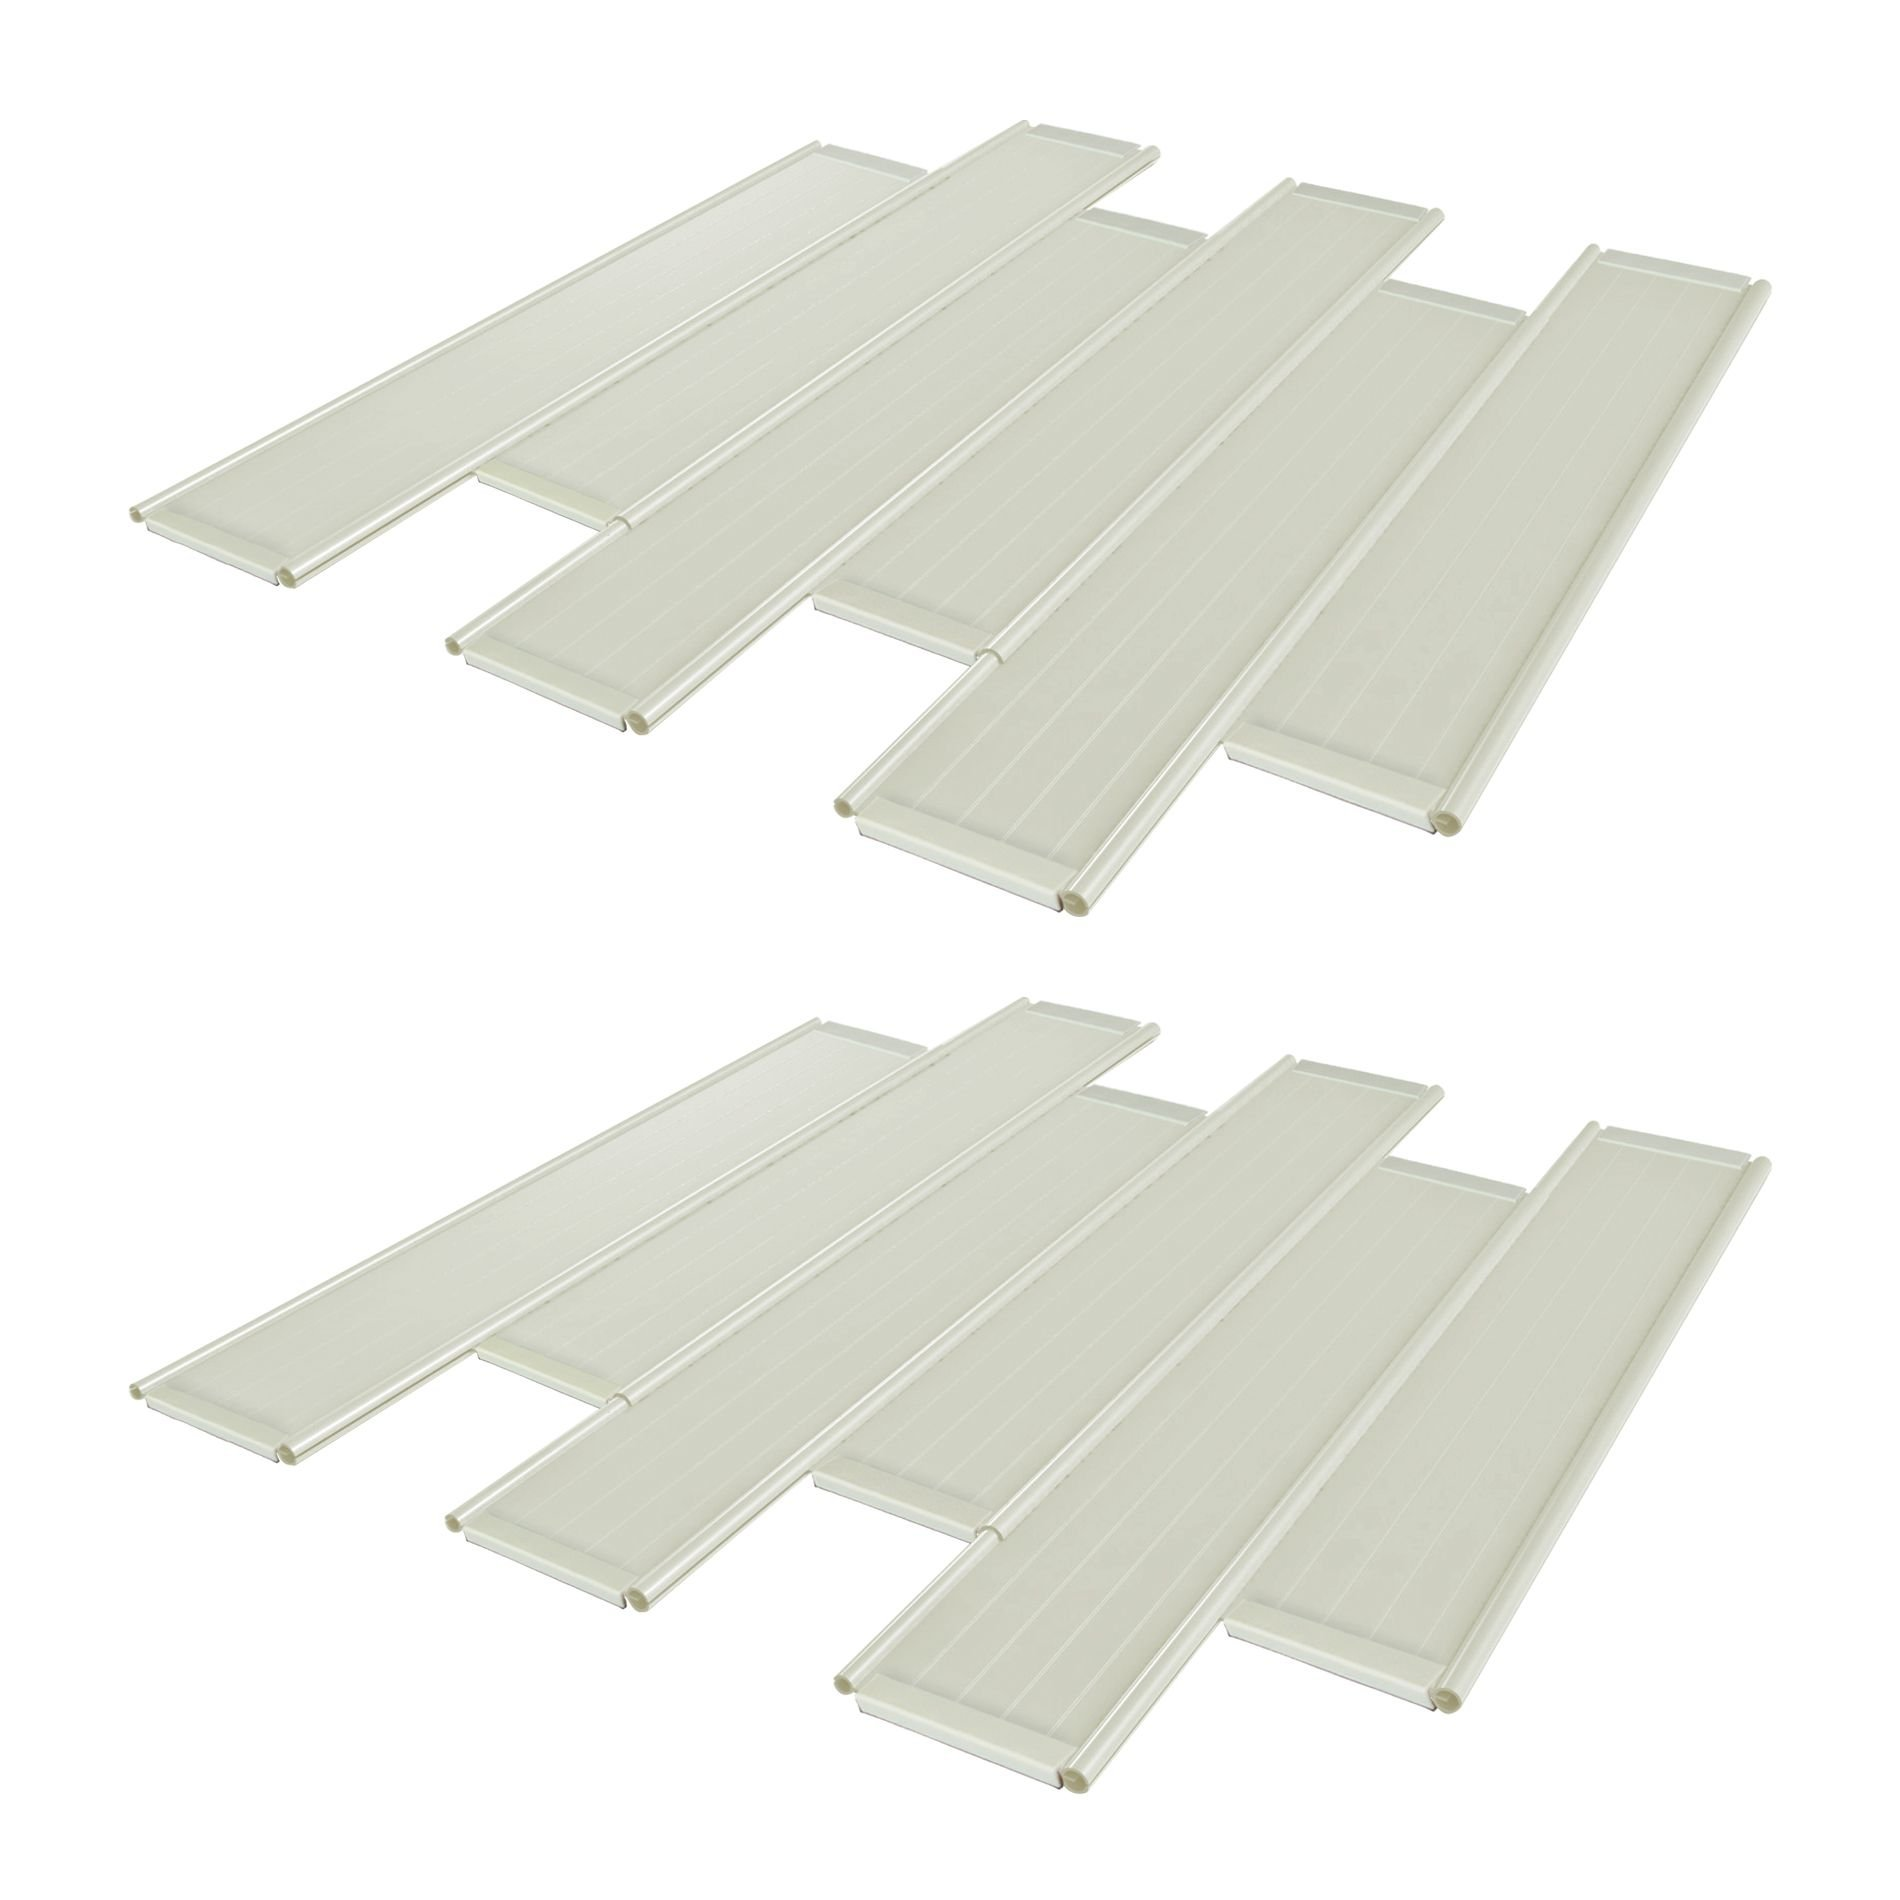 Furniture Fix - Set of 12 - Support for Sagging Love Seat by Furniture Fix (Image #1)